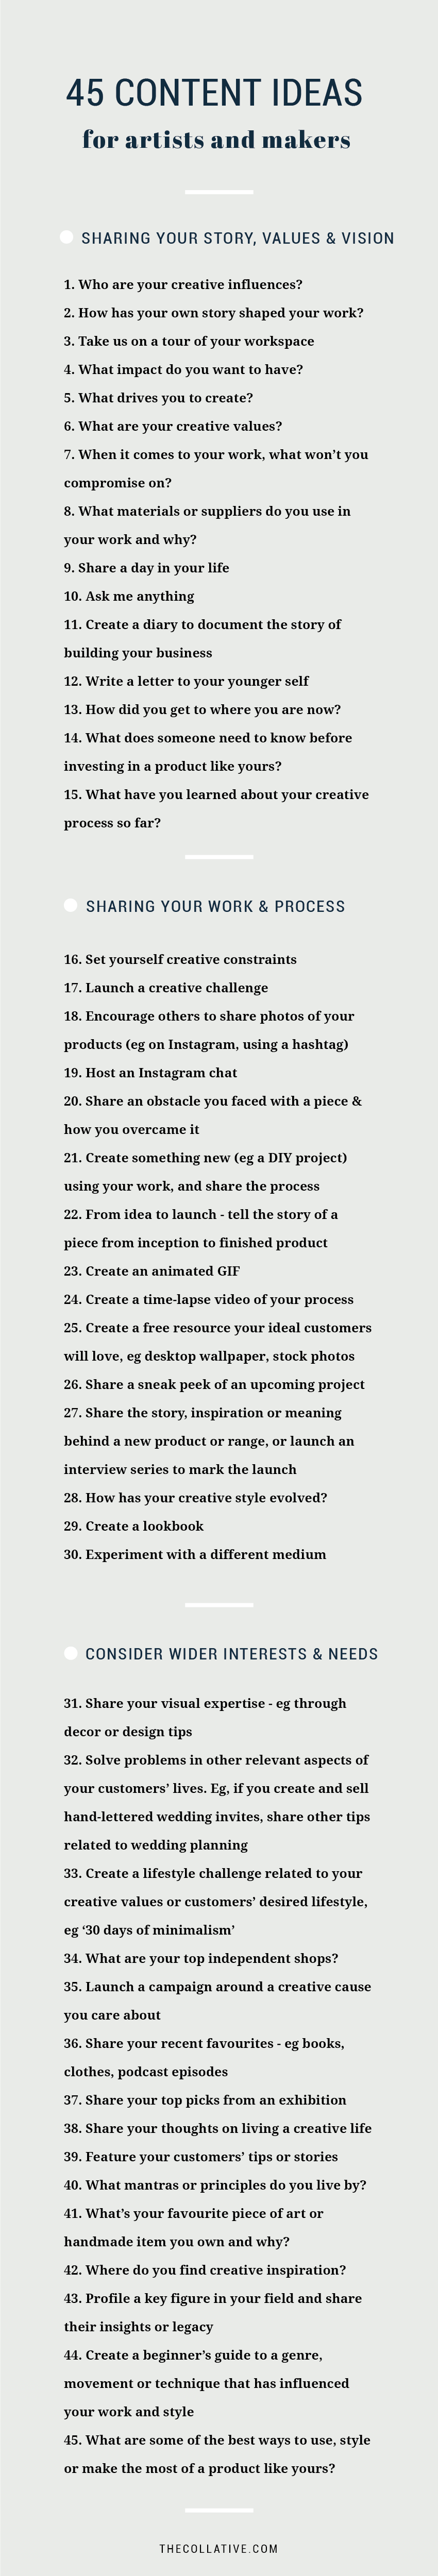 45 content ideas for artists and makers - The Collative